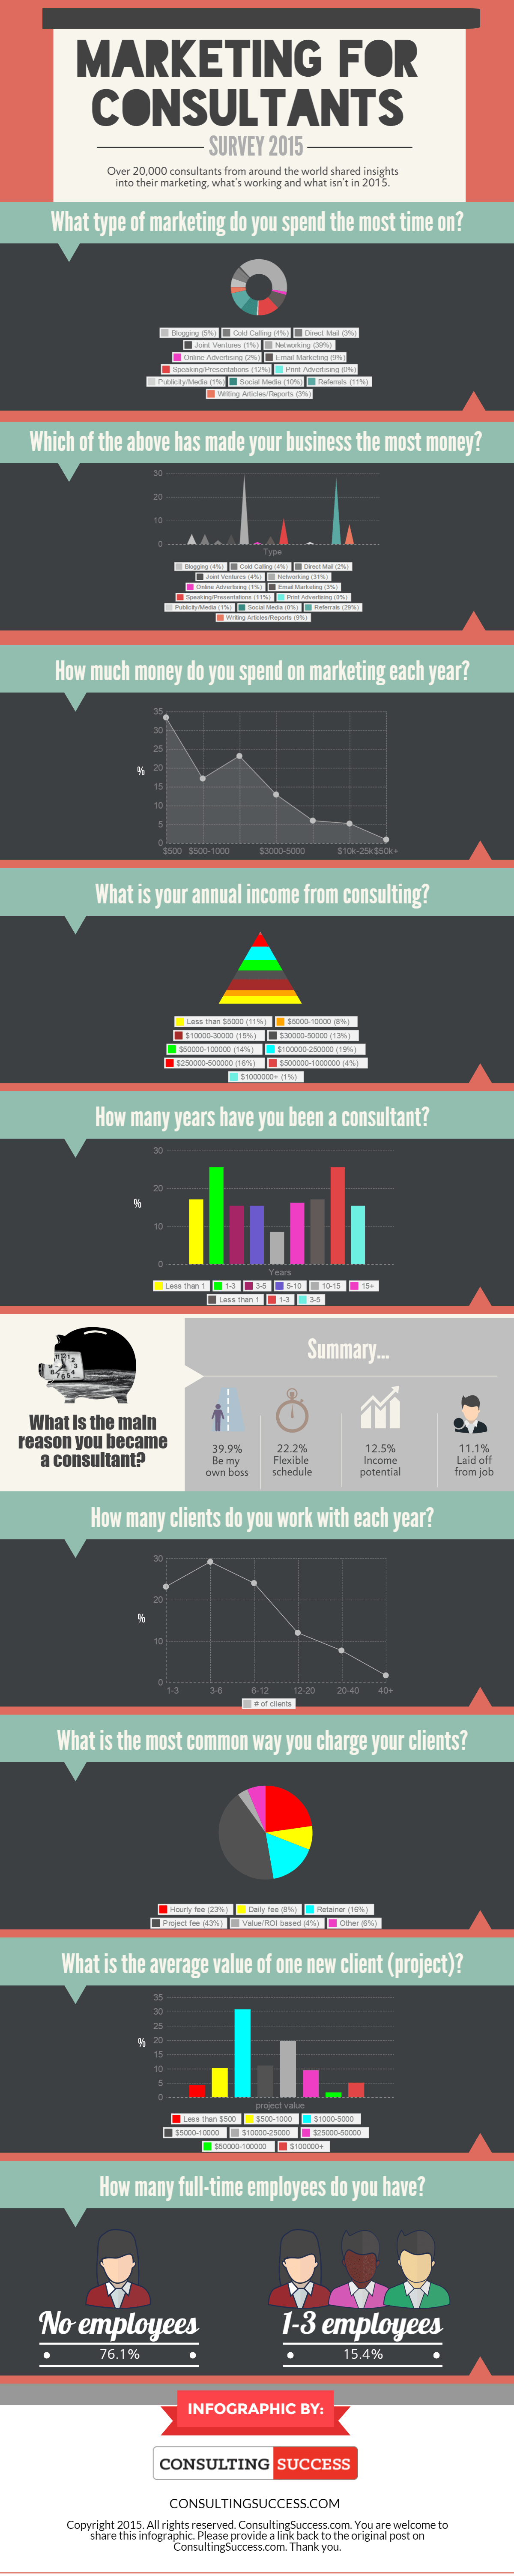 MarketingforConsultantsSurvey2015